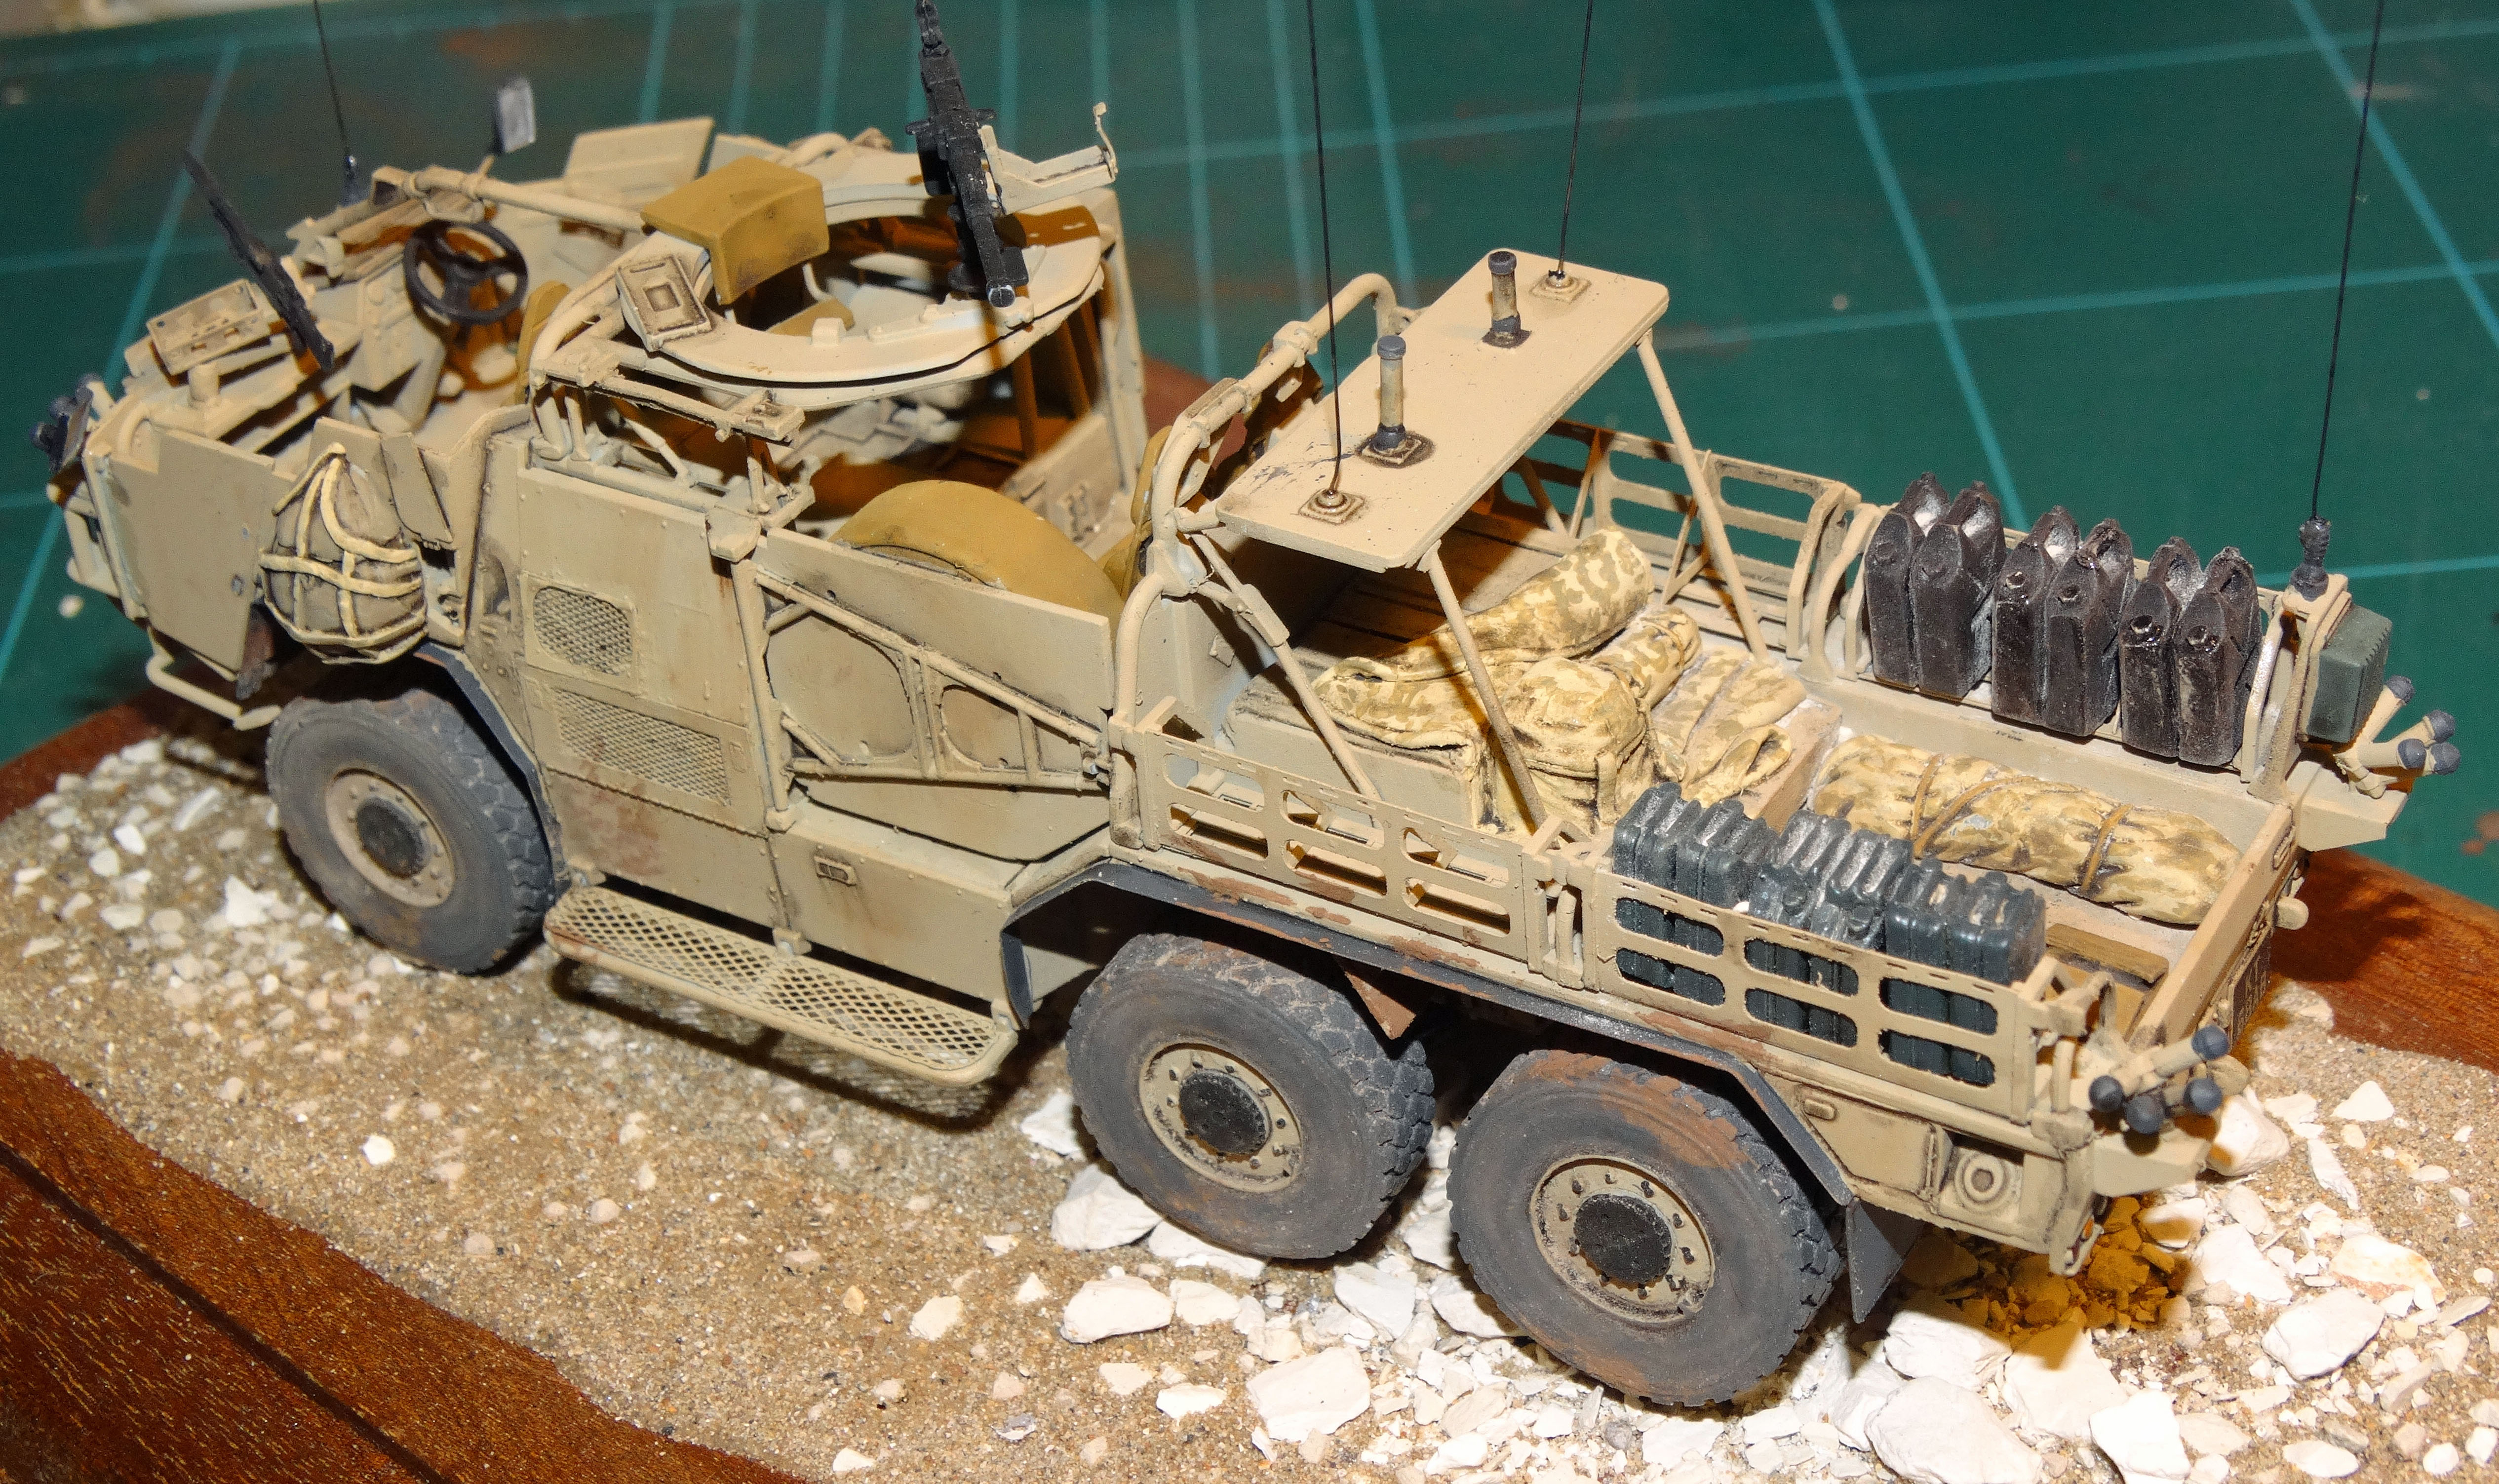 Airfix Coyote by Neil Pepper